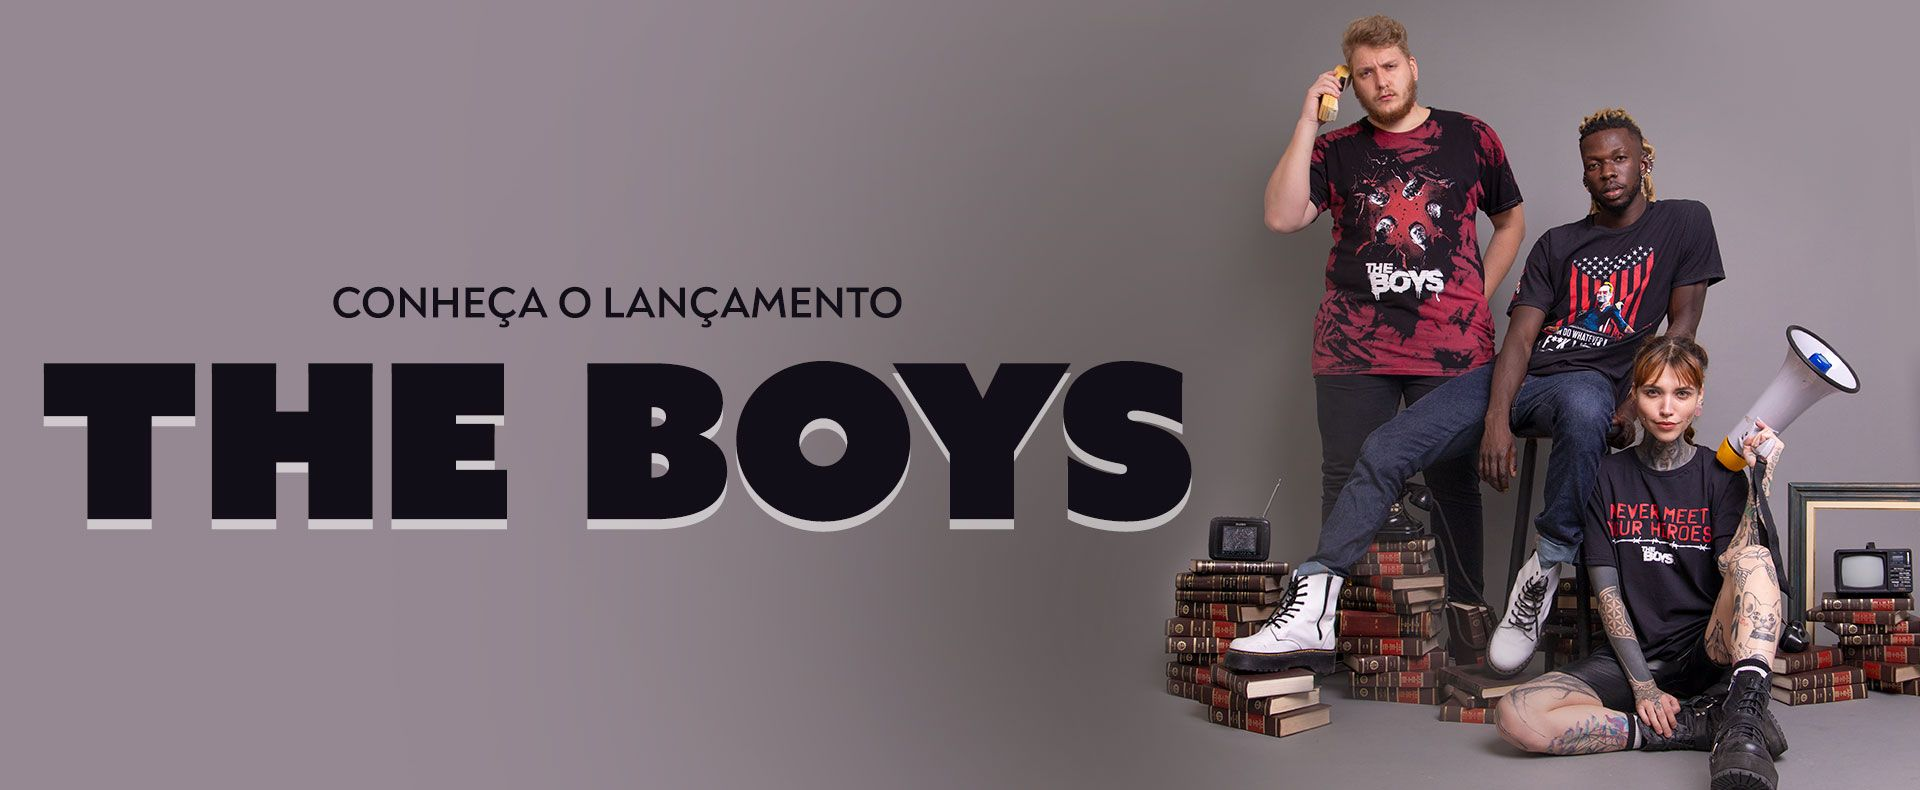 Banner - THE BOYS - Desktop